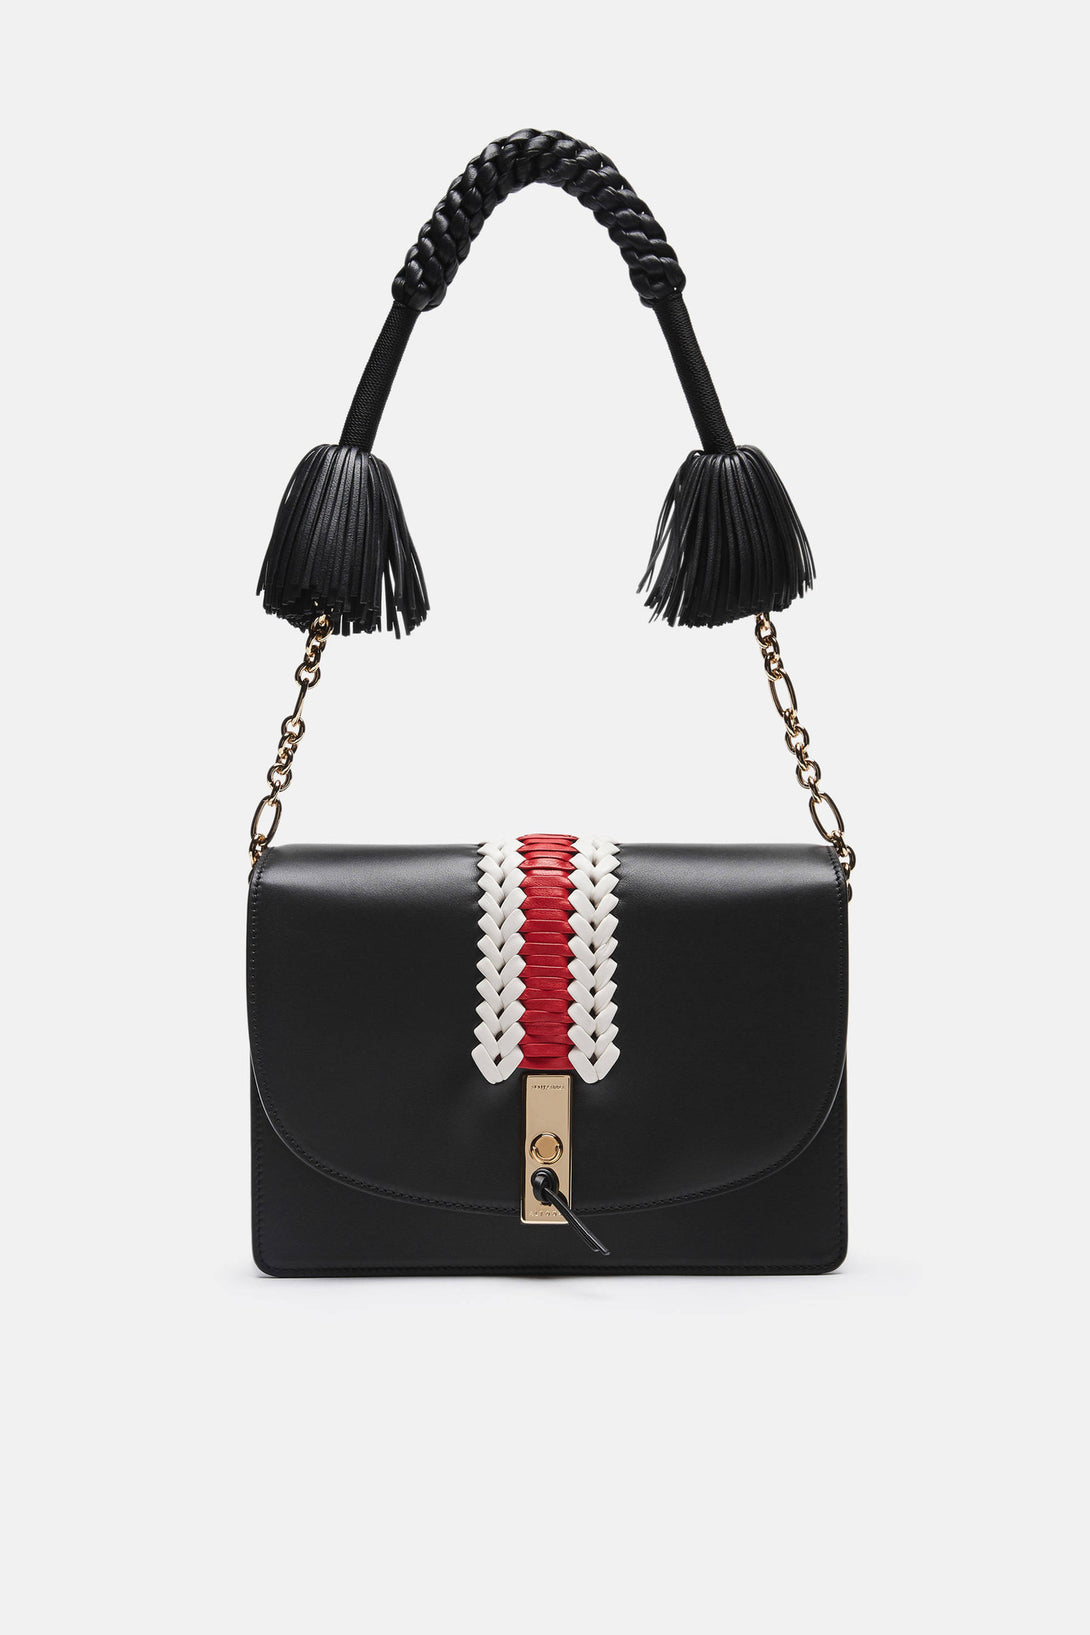 Ghianda Shoulder Bag - Black with Embroidery